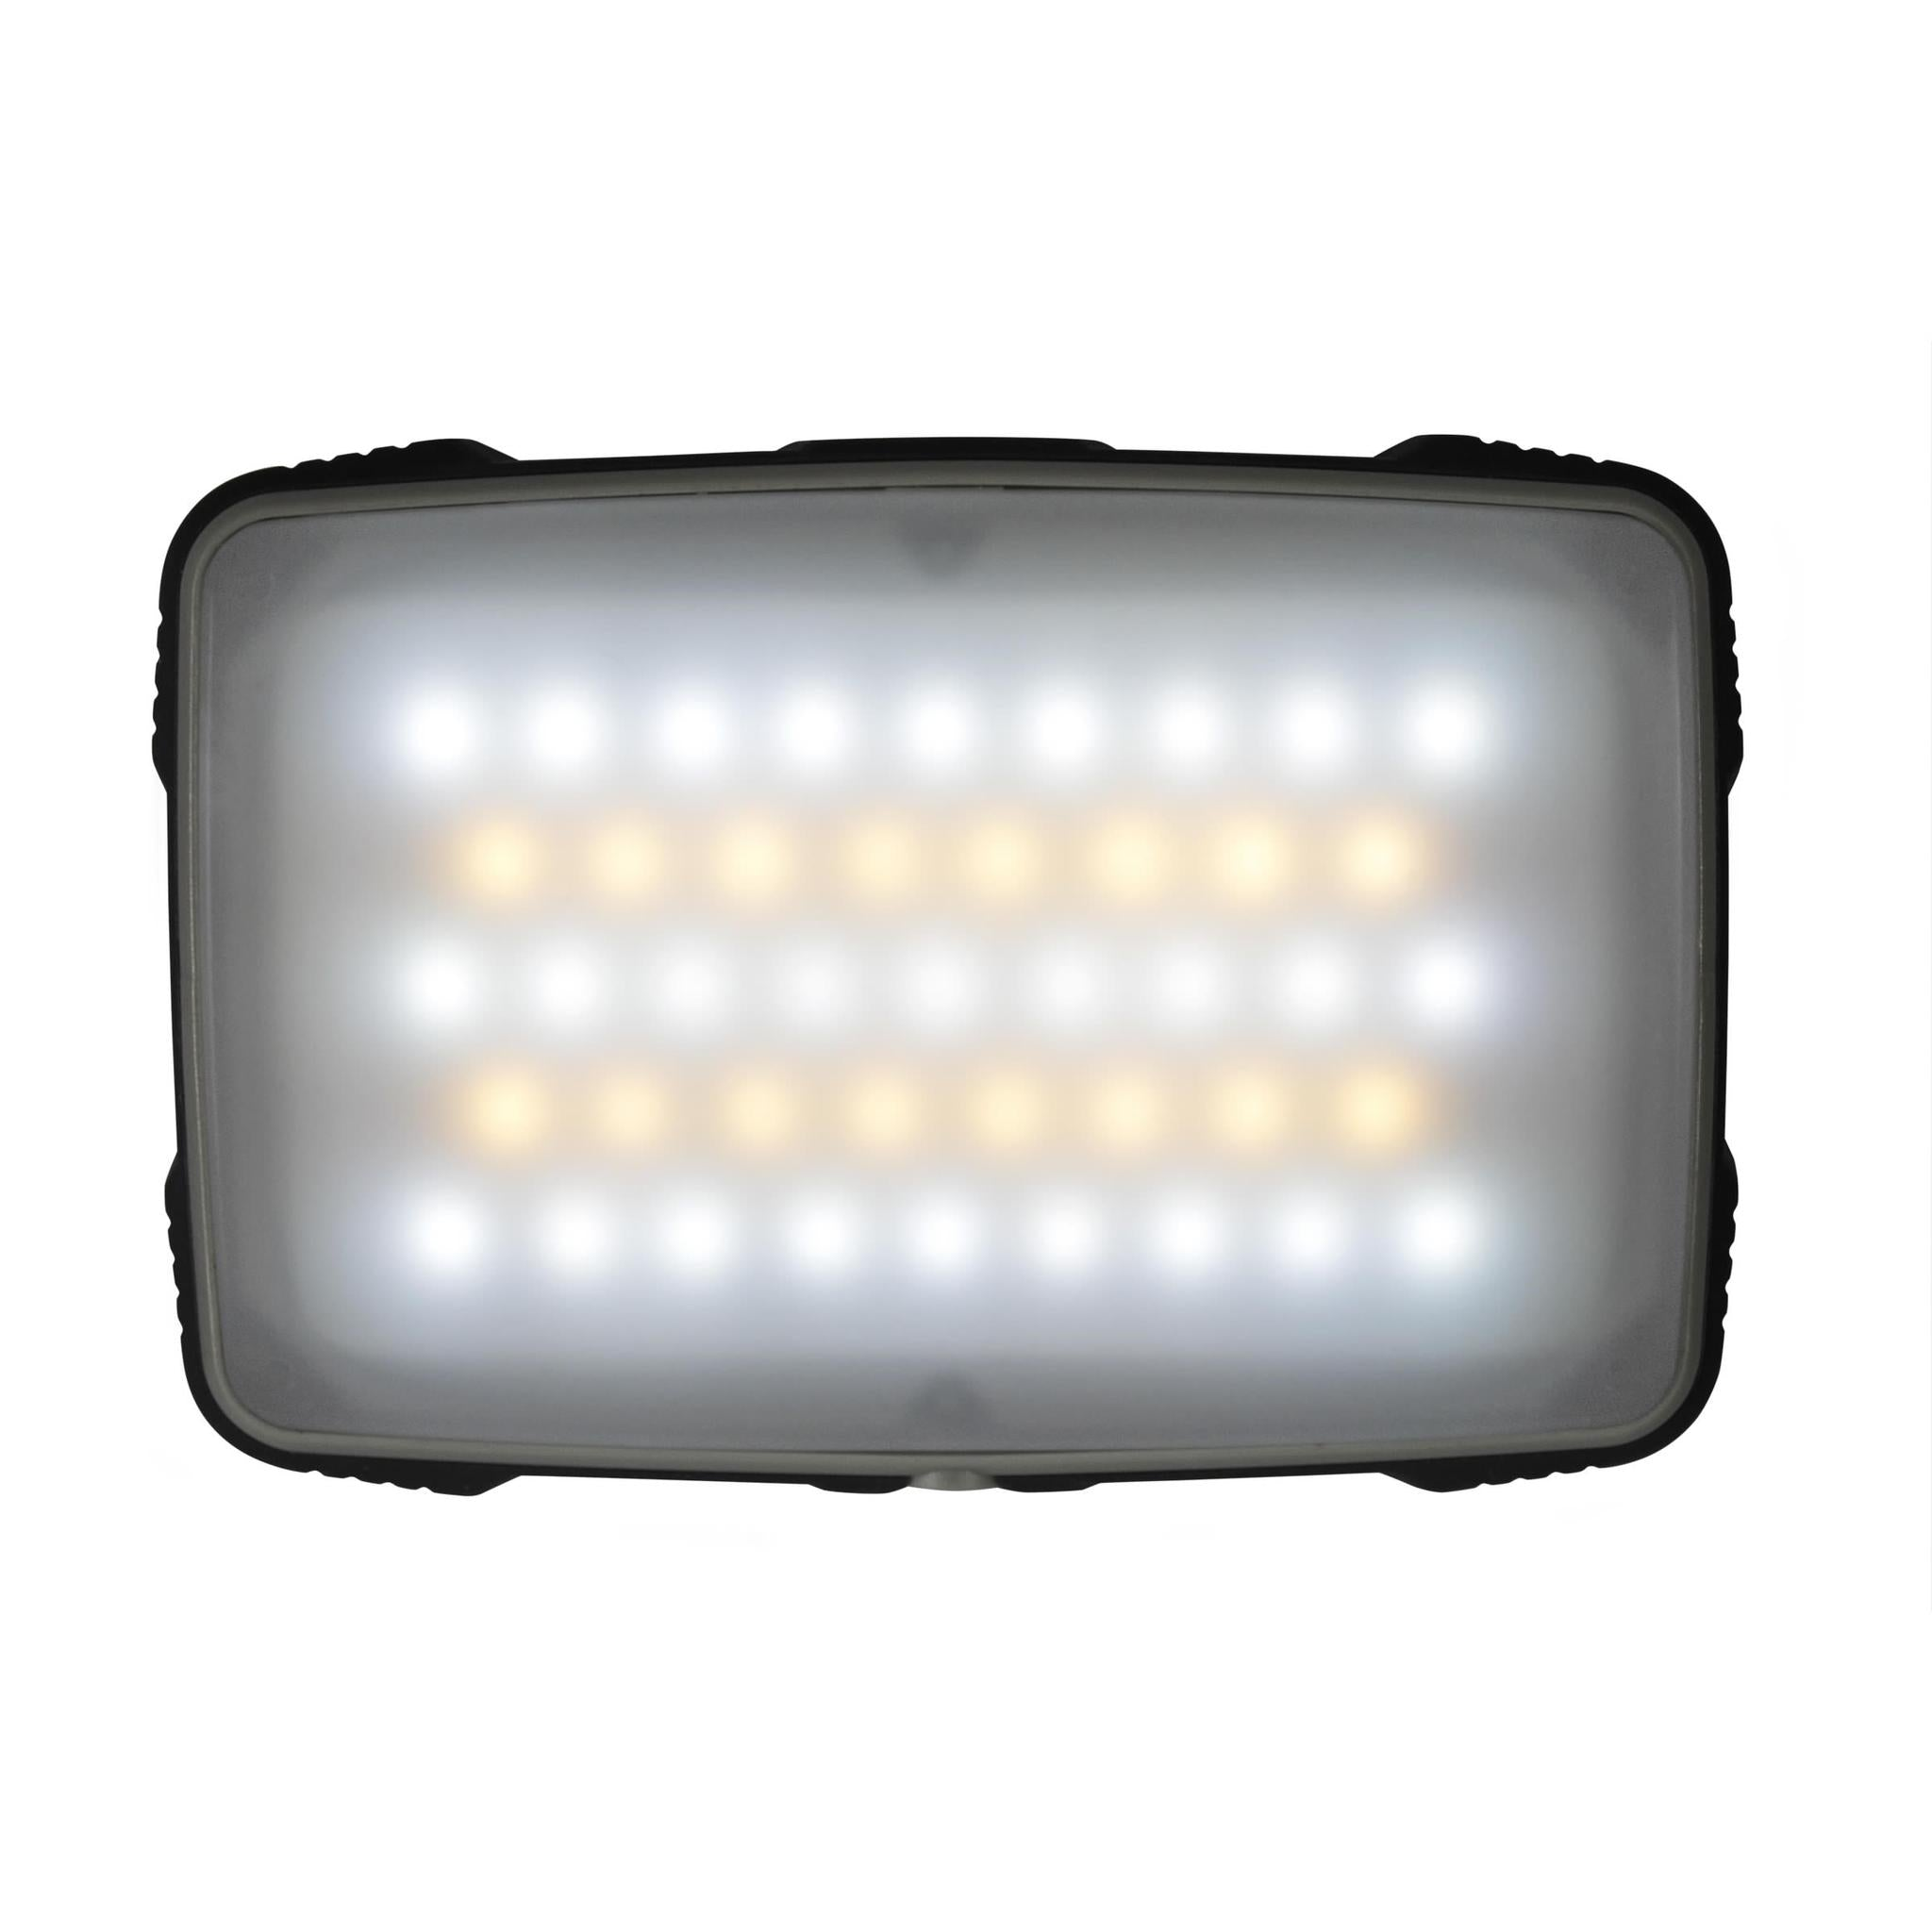 UST Survival - Slim 1100 LED Emergency Light